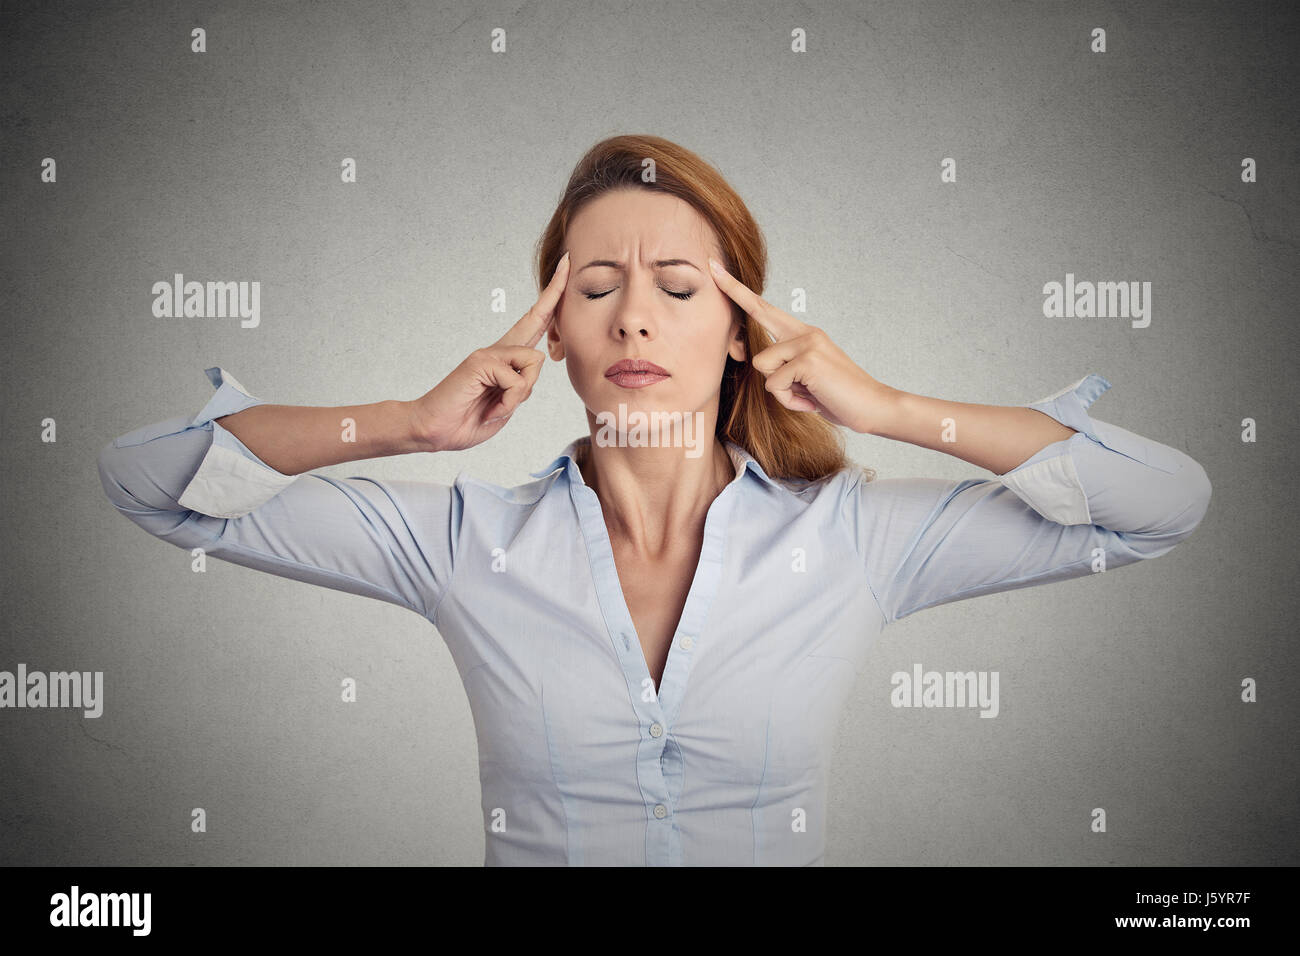 Portrait of concentrating woman isolated on grey wall background. - Stock Image